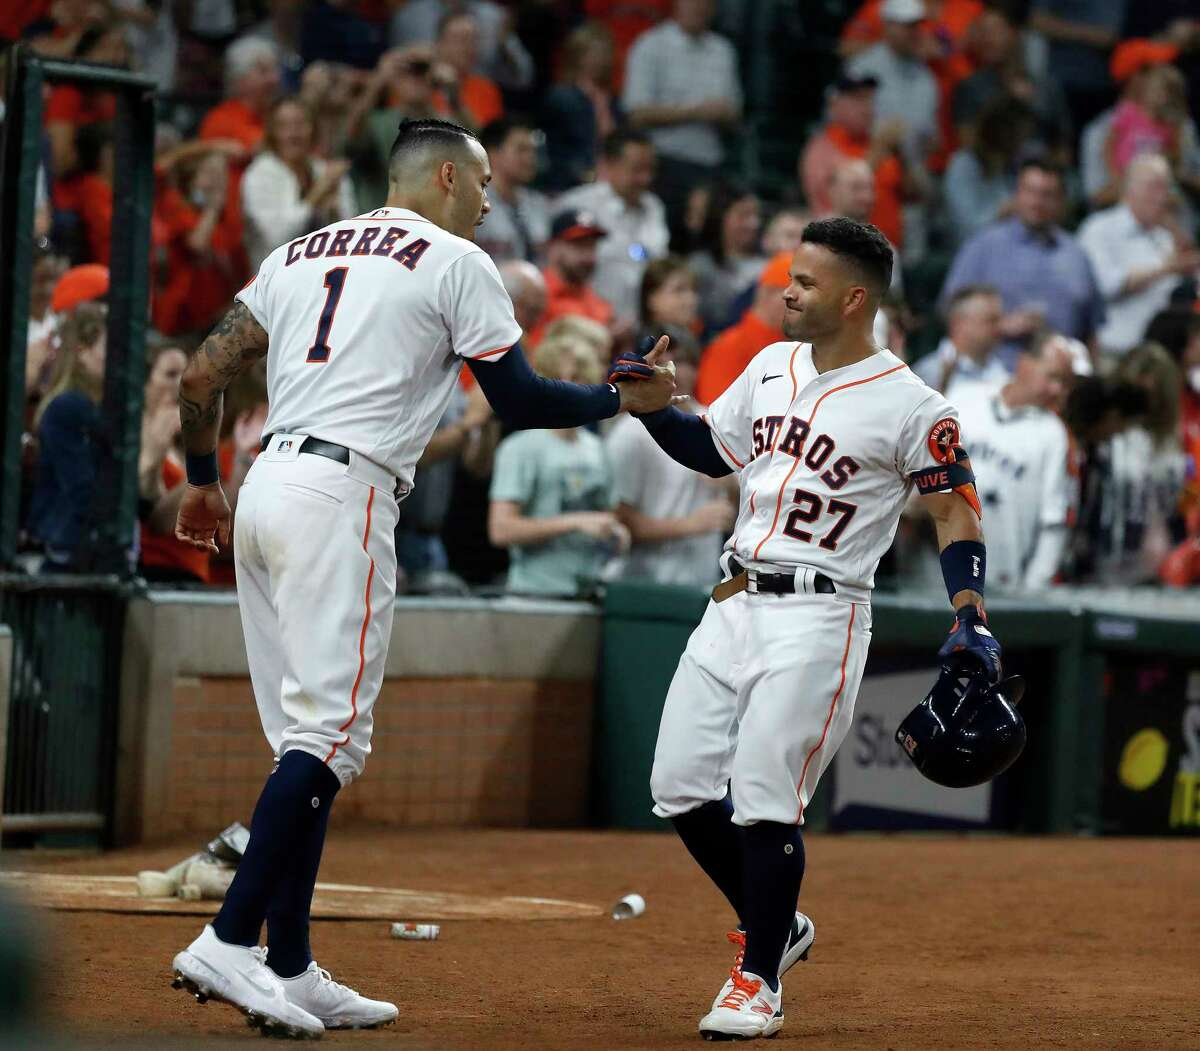 The Astros offfense - led by Carlos Correa - are absolutely crushing the baseball.